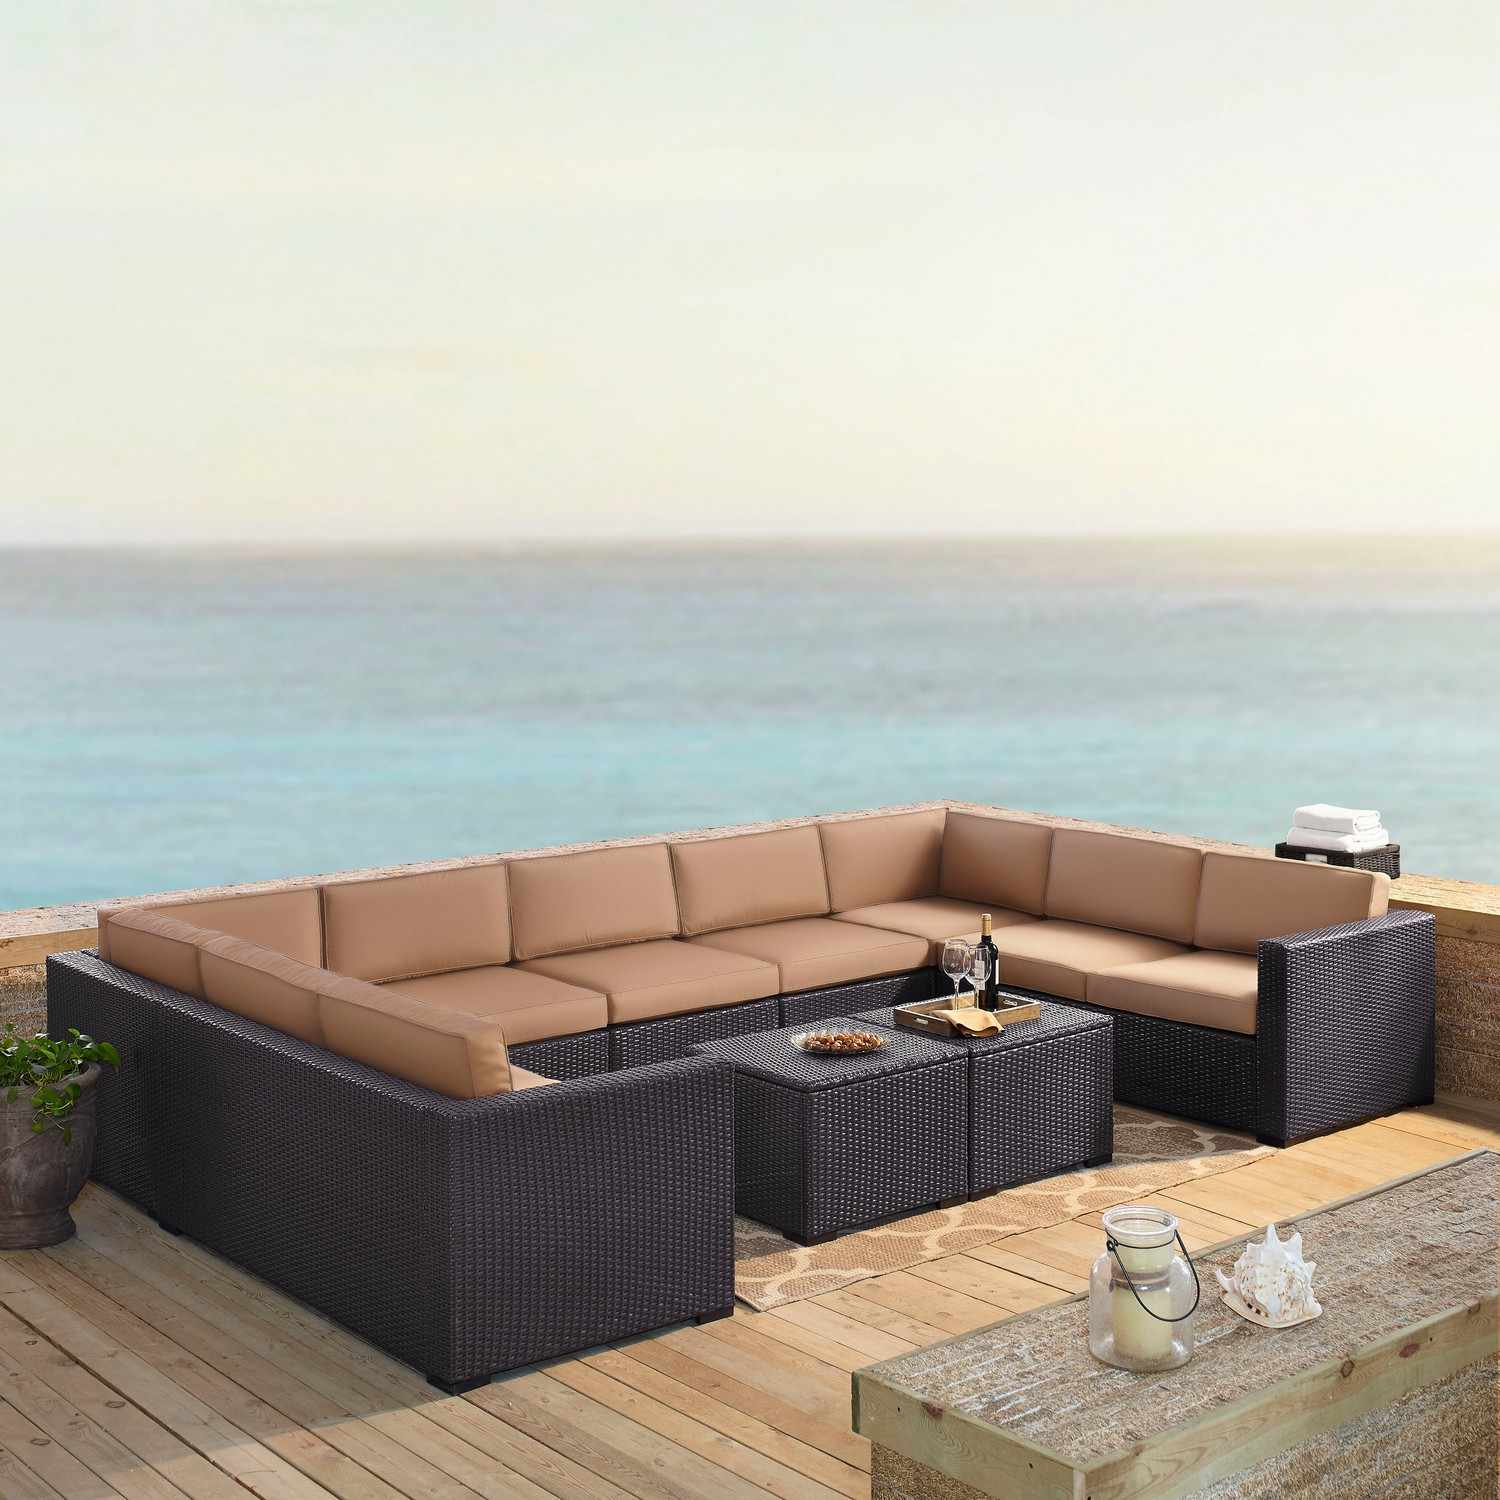 Crosley Biscayne 7-PC Outdoor Wicker Sectional Set - 4 Loveseats, Armless Chair, 2 Coffee Tables - Mocha/Brown